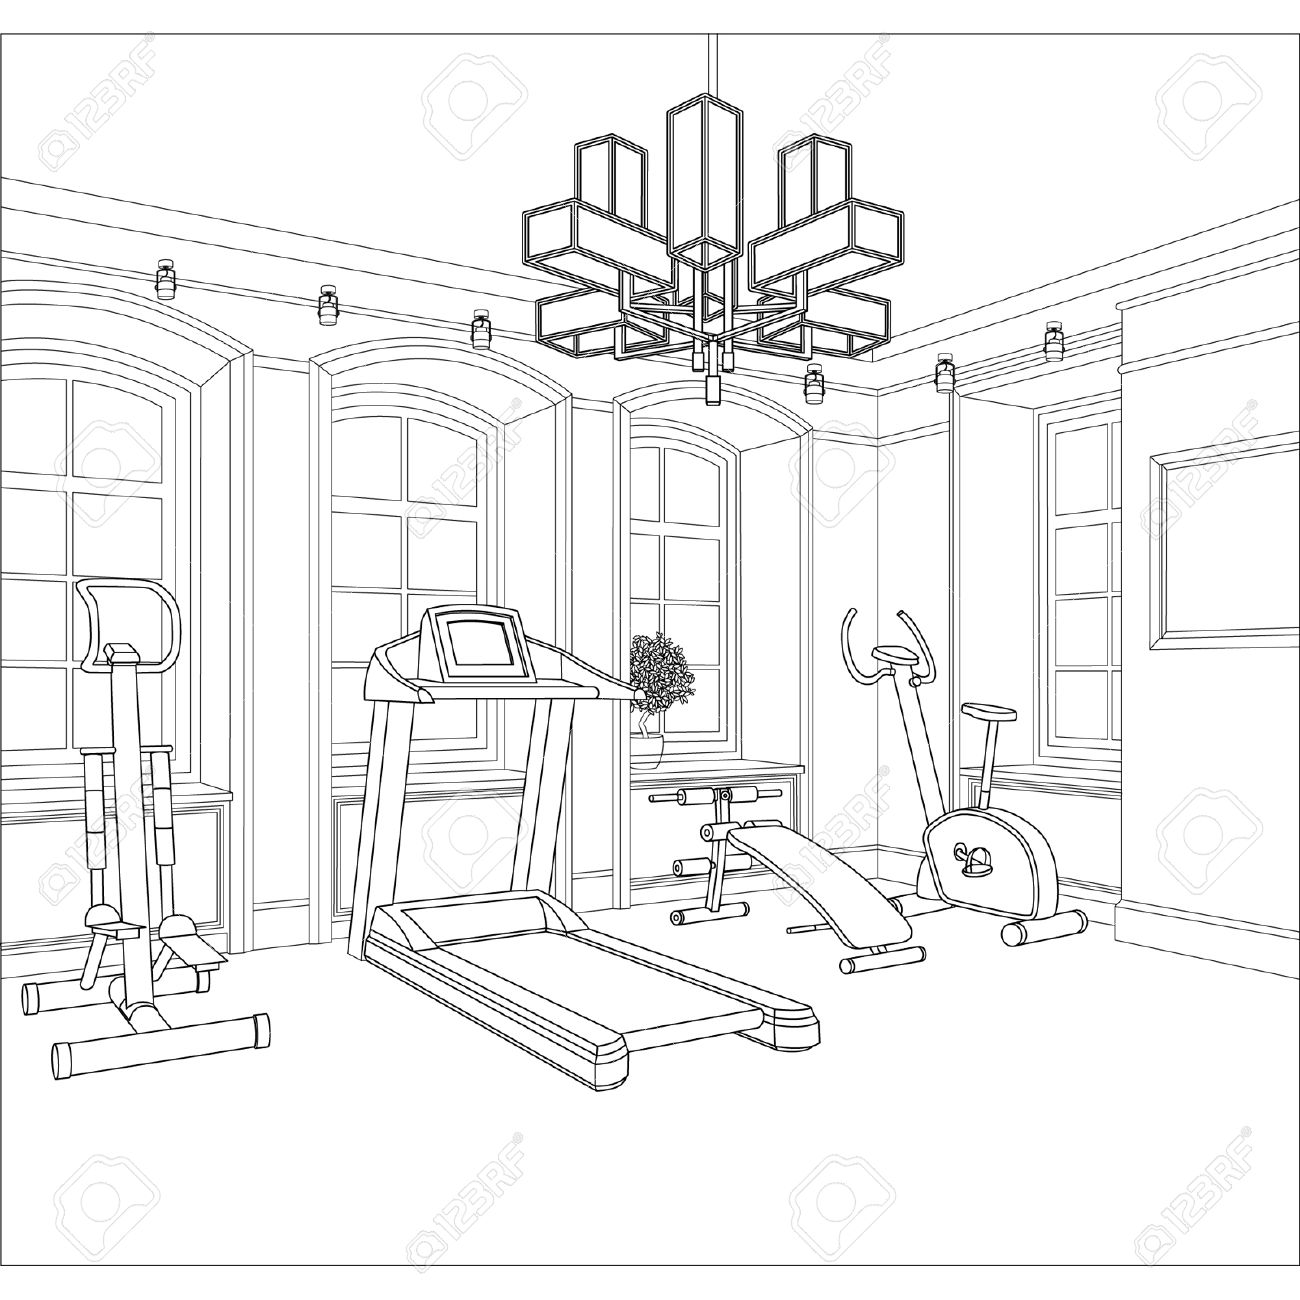 1300x1300 Editable Vector Illustration Of An Outline Sketch Of A Interior